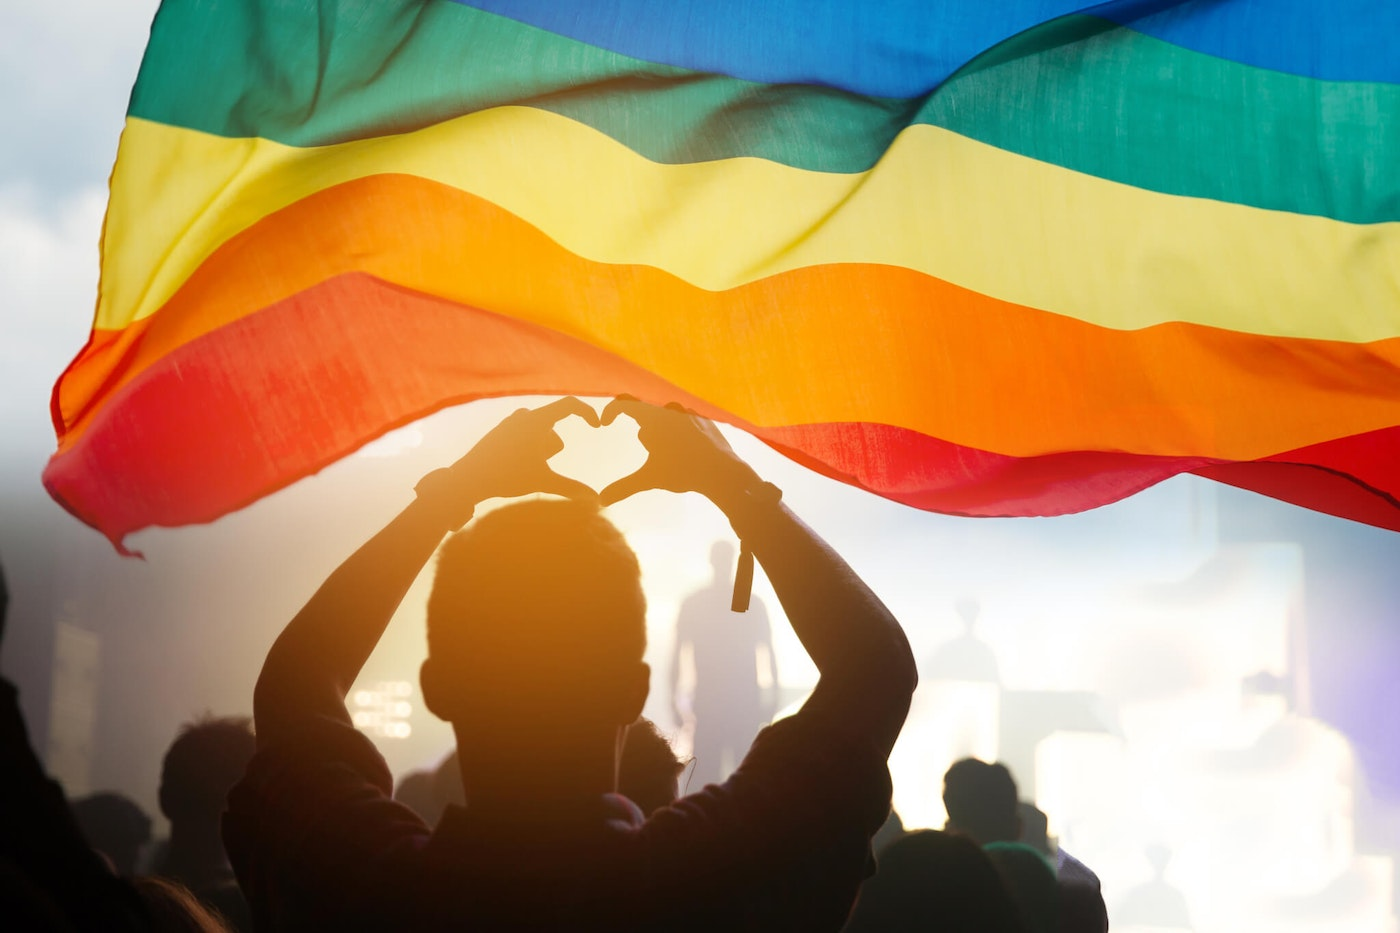 A person backlit by the sun makes a shape of a heart with their fingers while standing beneath a rainbow flag.